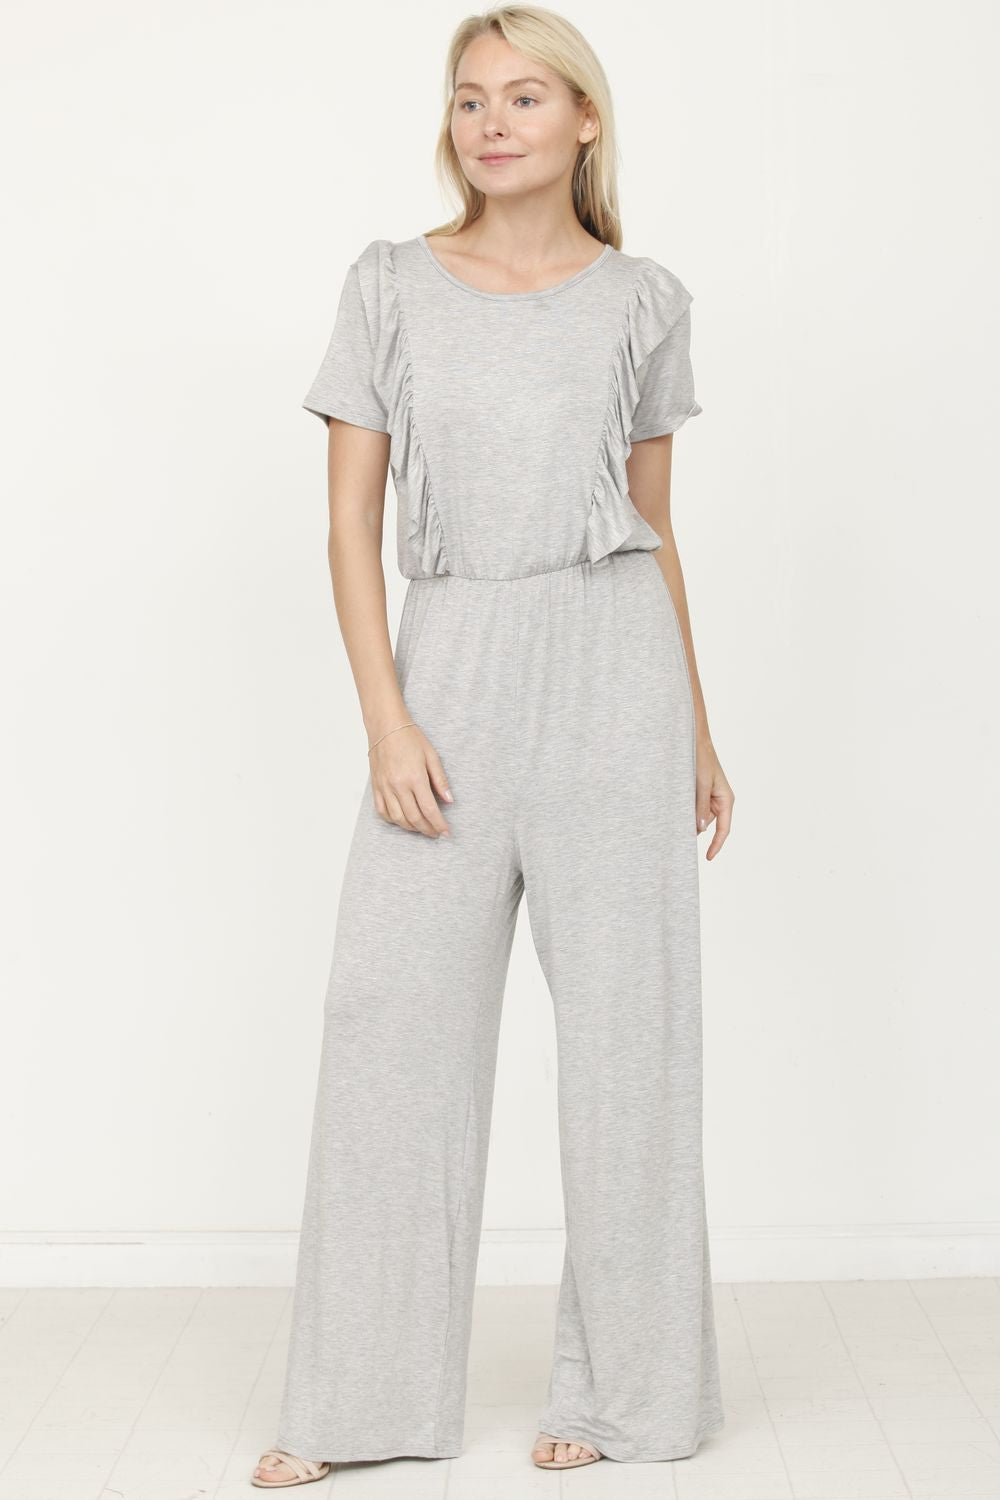 Solid Grey Short Sleeve Jumpsuit with Ruffle